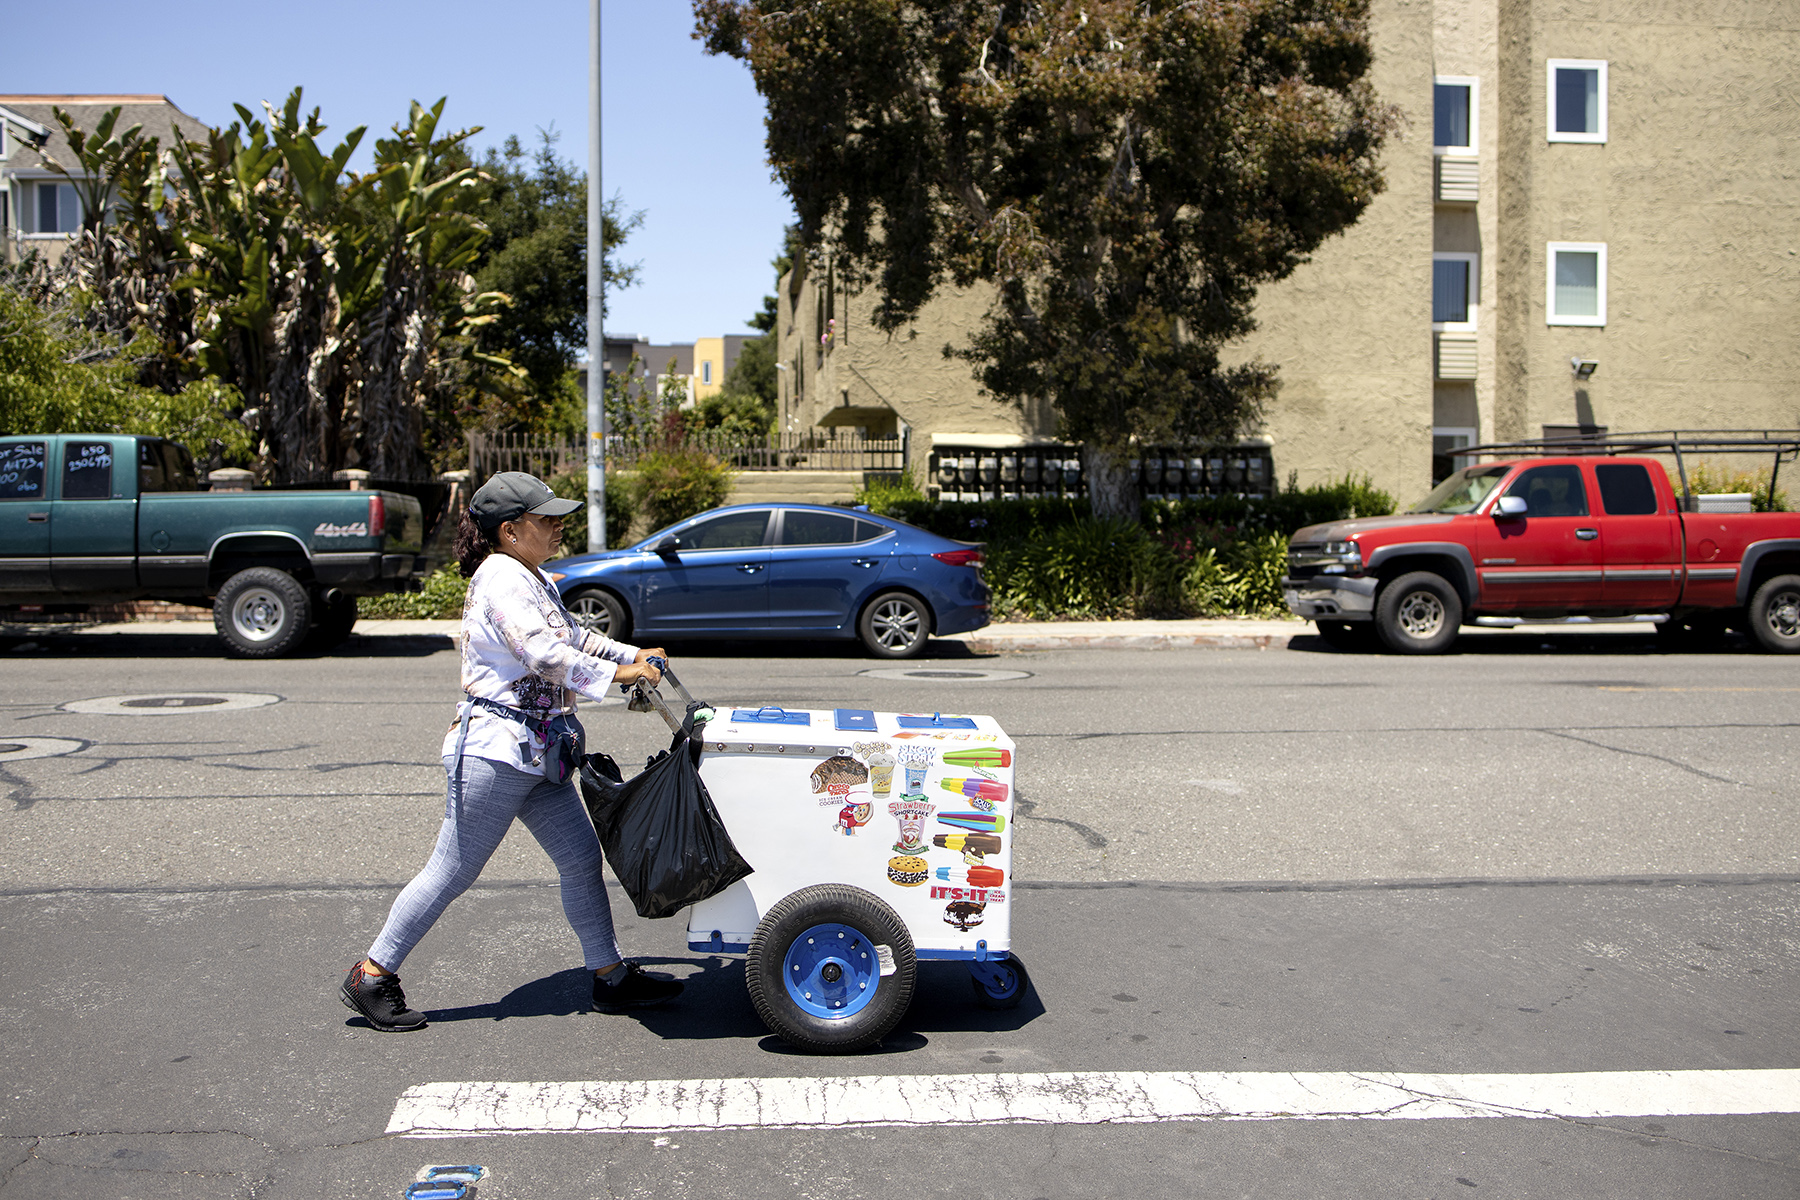 An ice cream and popsicle vendor walks through the city to sell her products on a hot summer day in East Palo Alto, Calif., on June, 2, 2019.